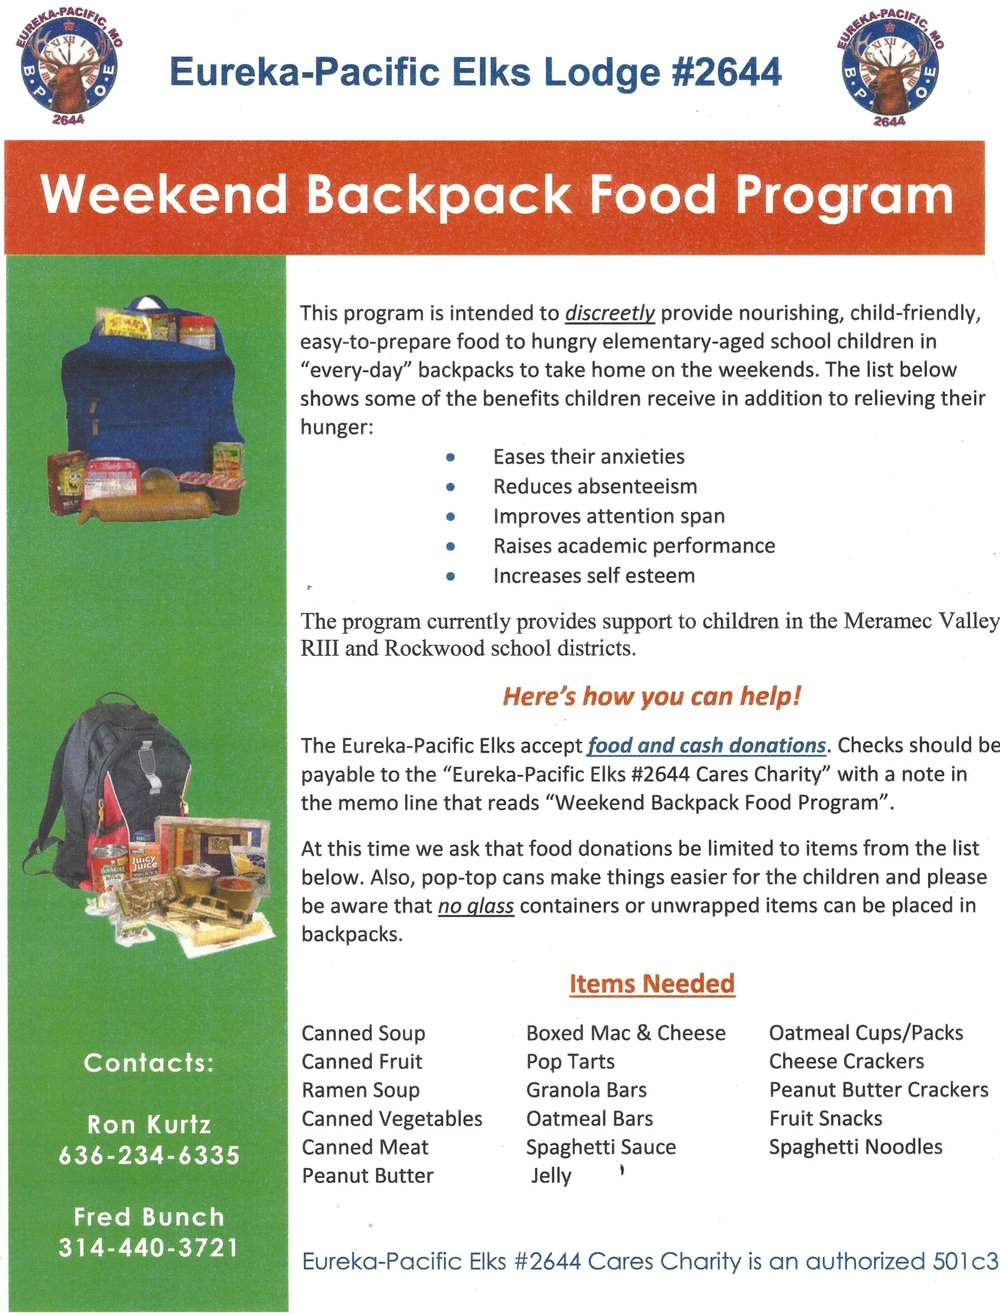 Weekend Backpack Food Program